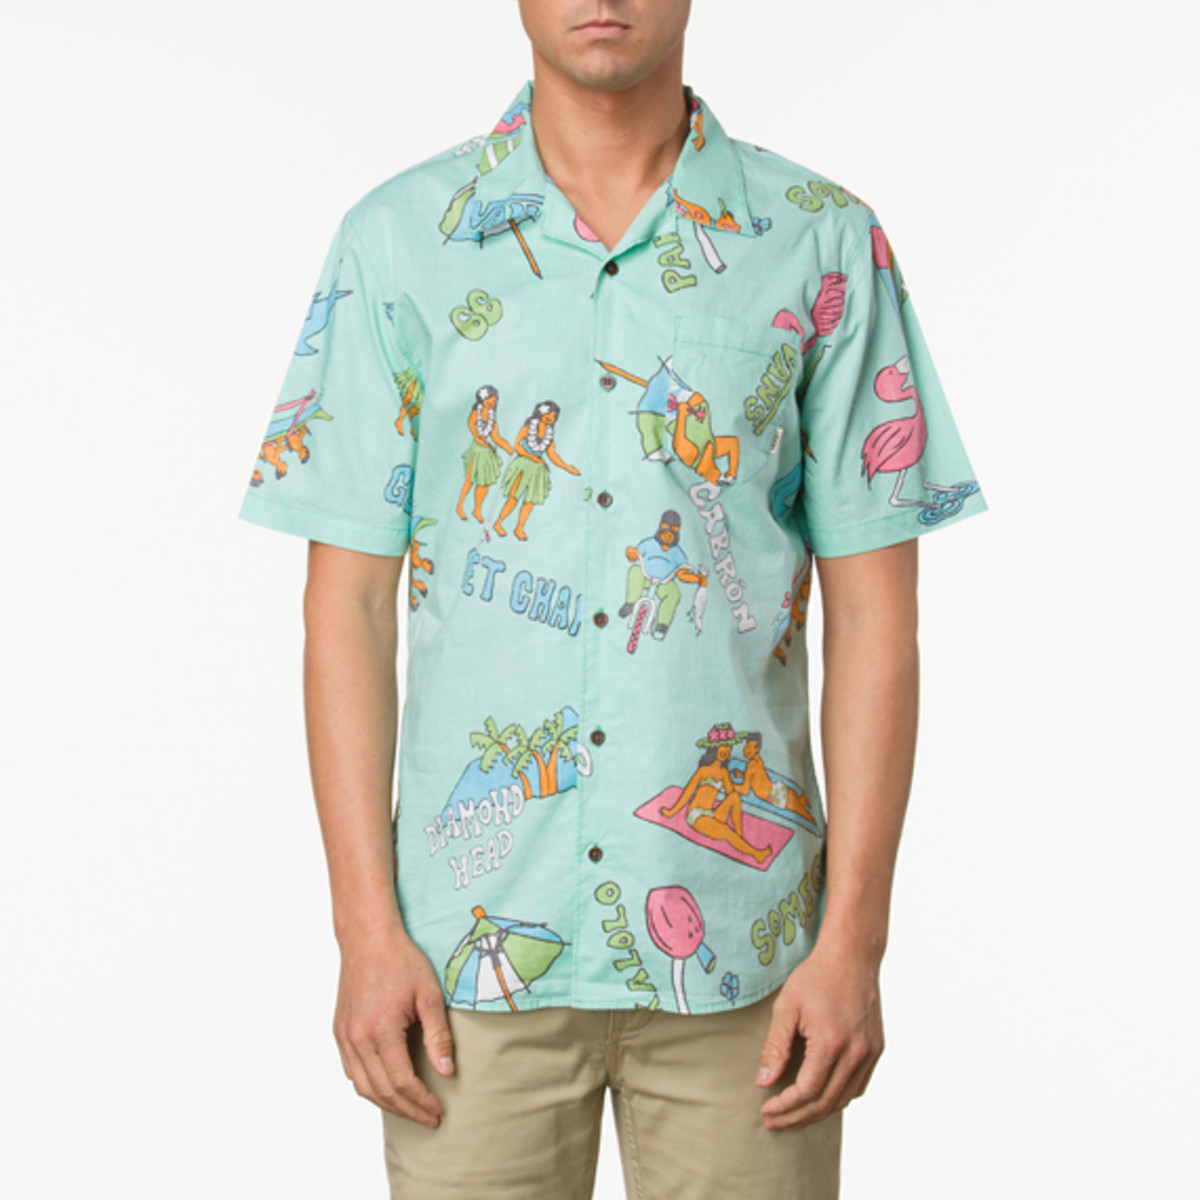 vans-apparel-island-collection-spring-2013-d